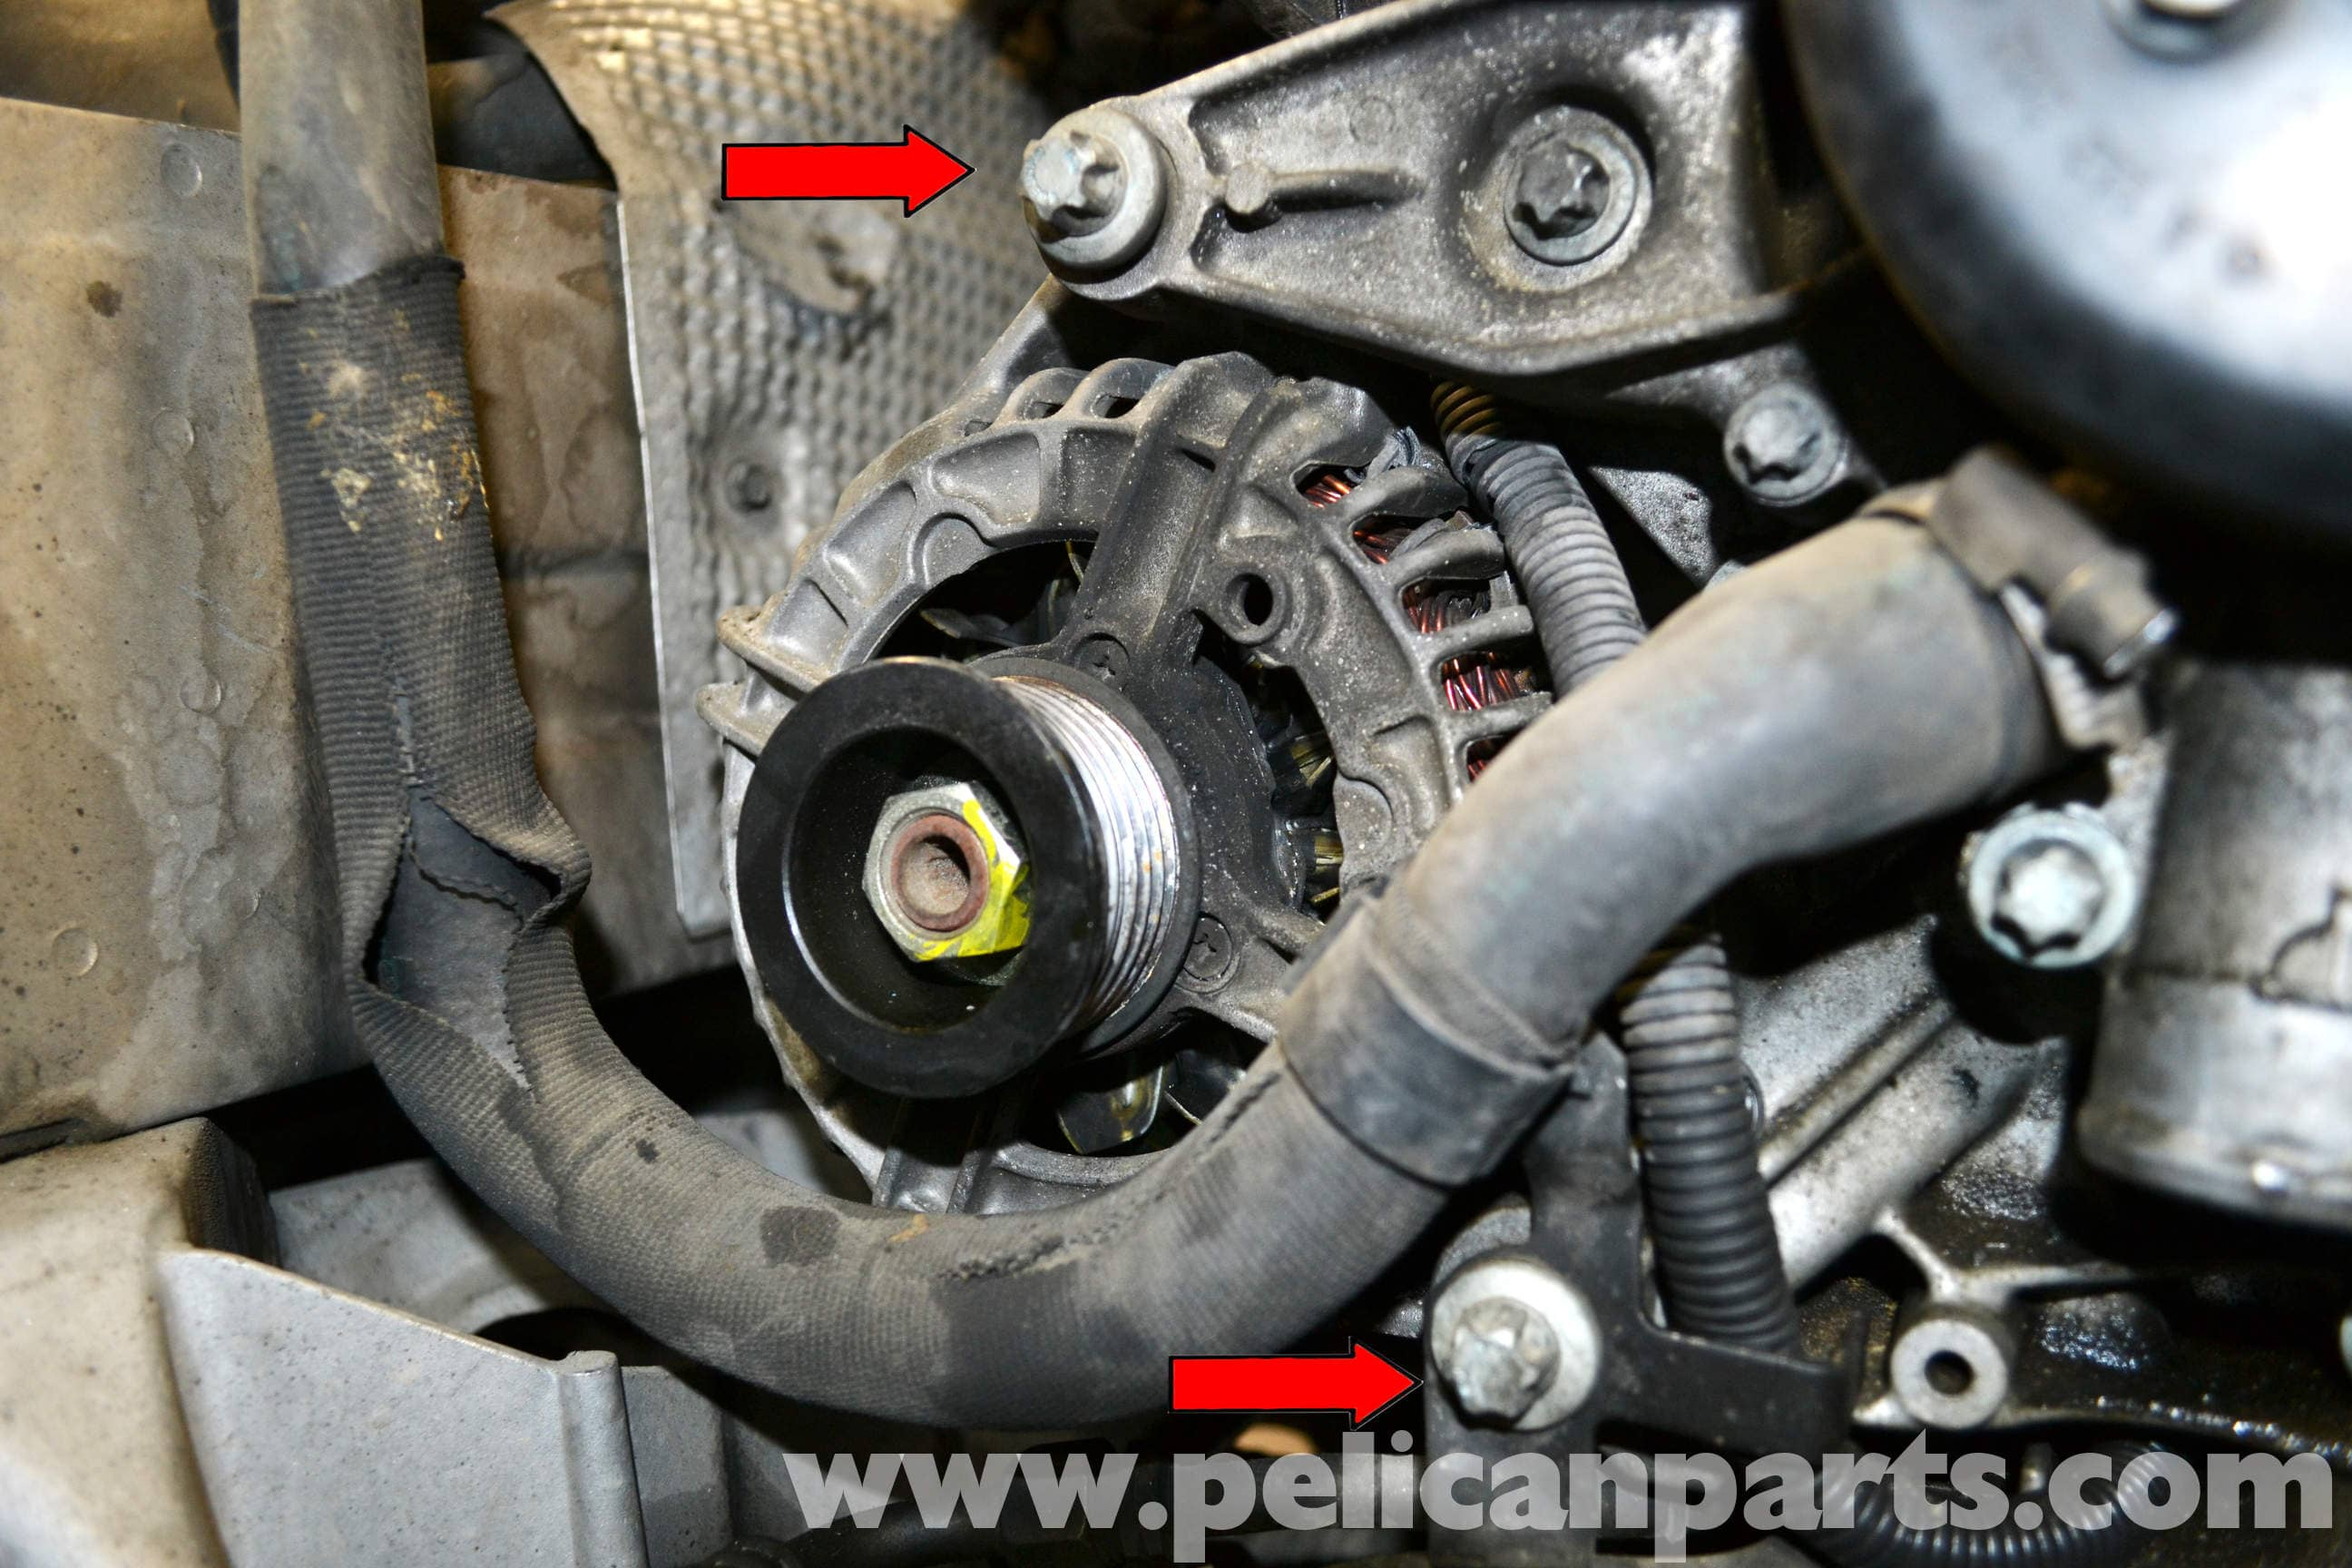 Mercedes Benz W203 Timing Chain Tensioner Replacement